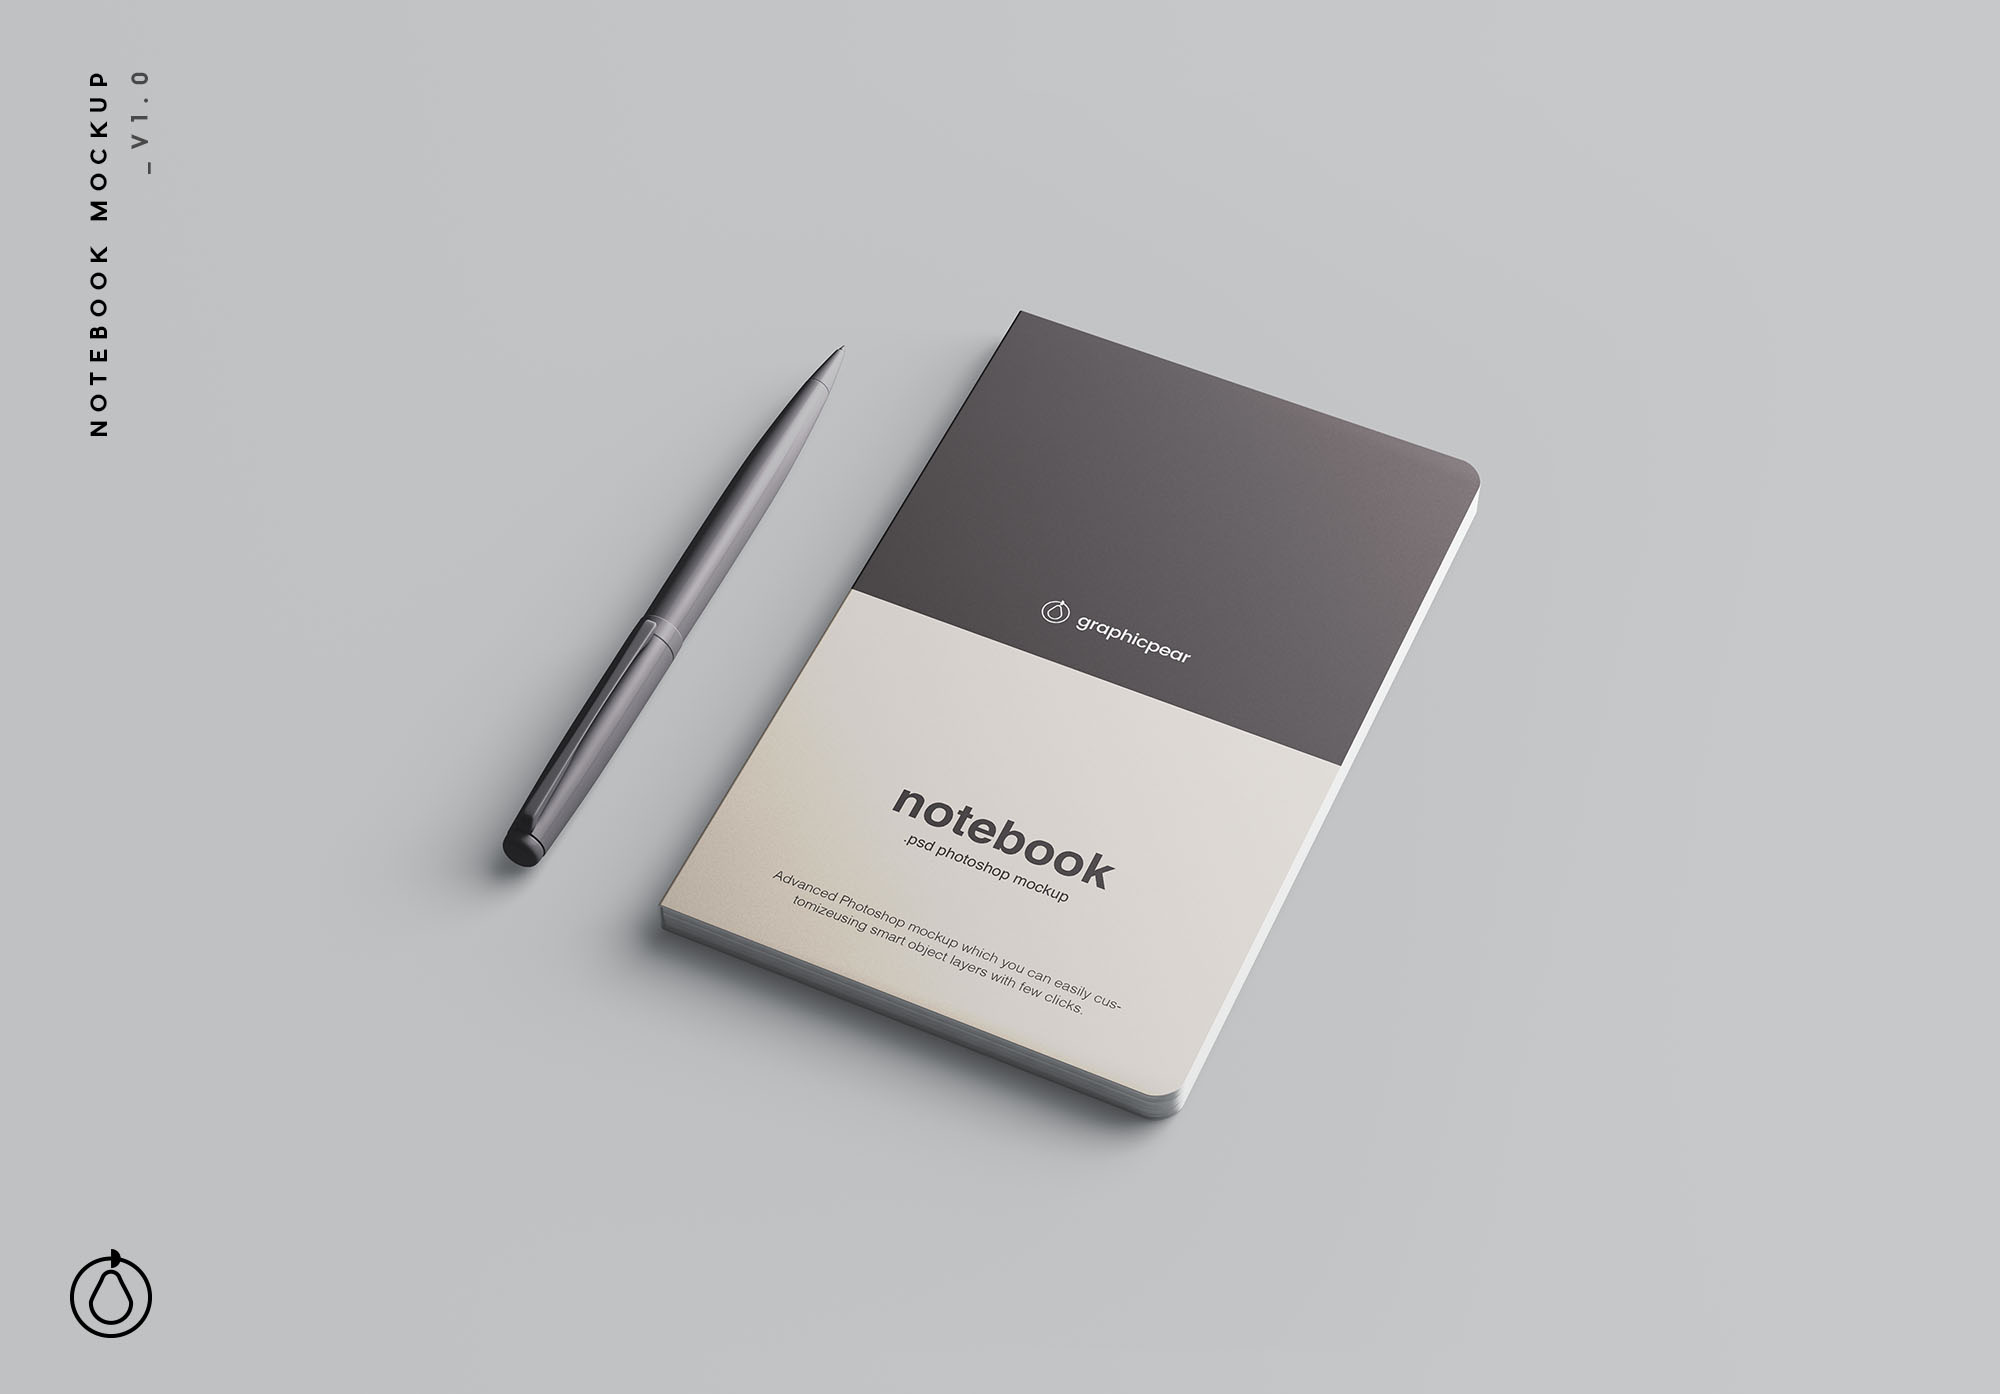 Notebook Mockup with Pen